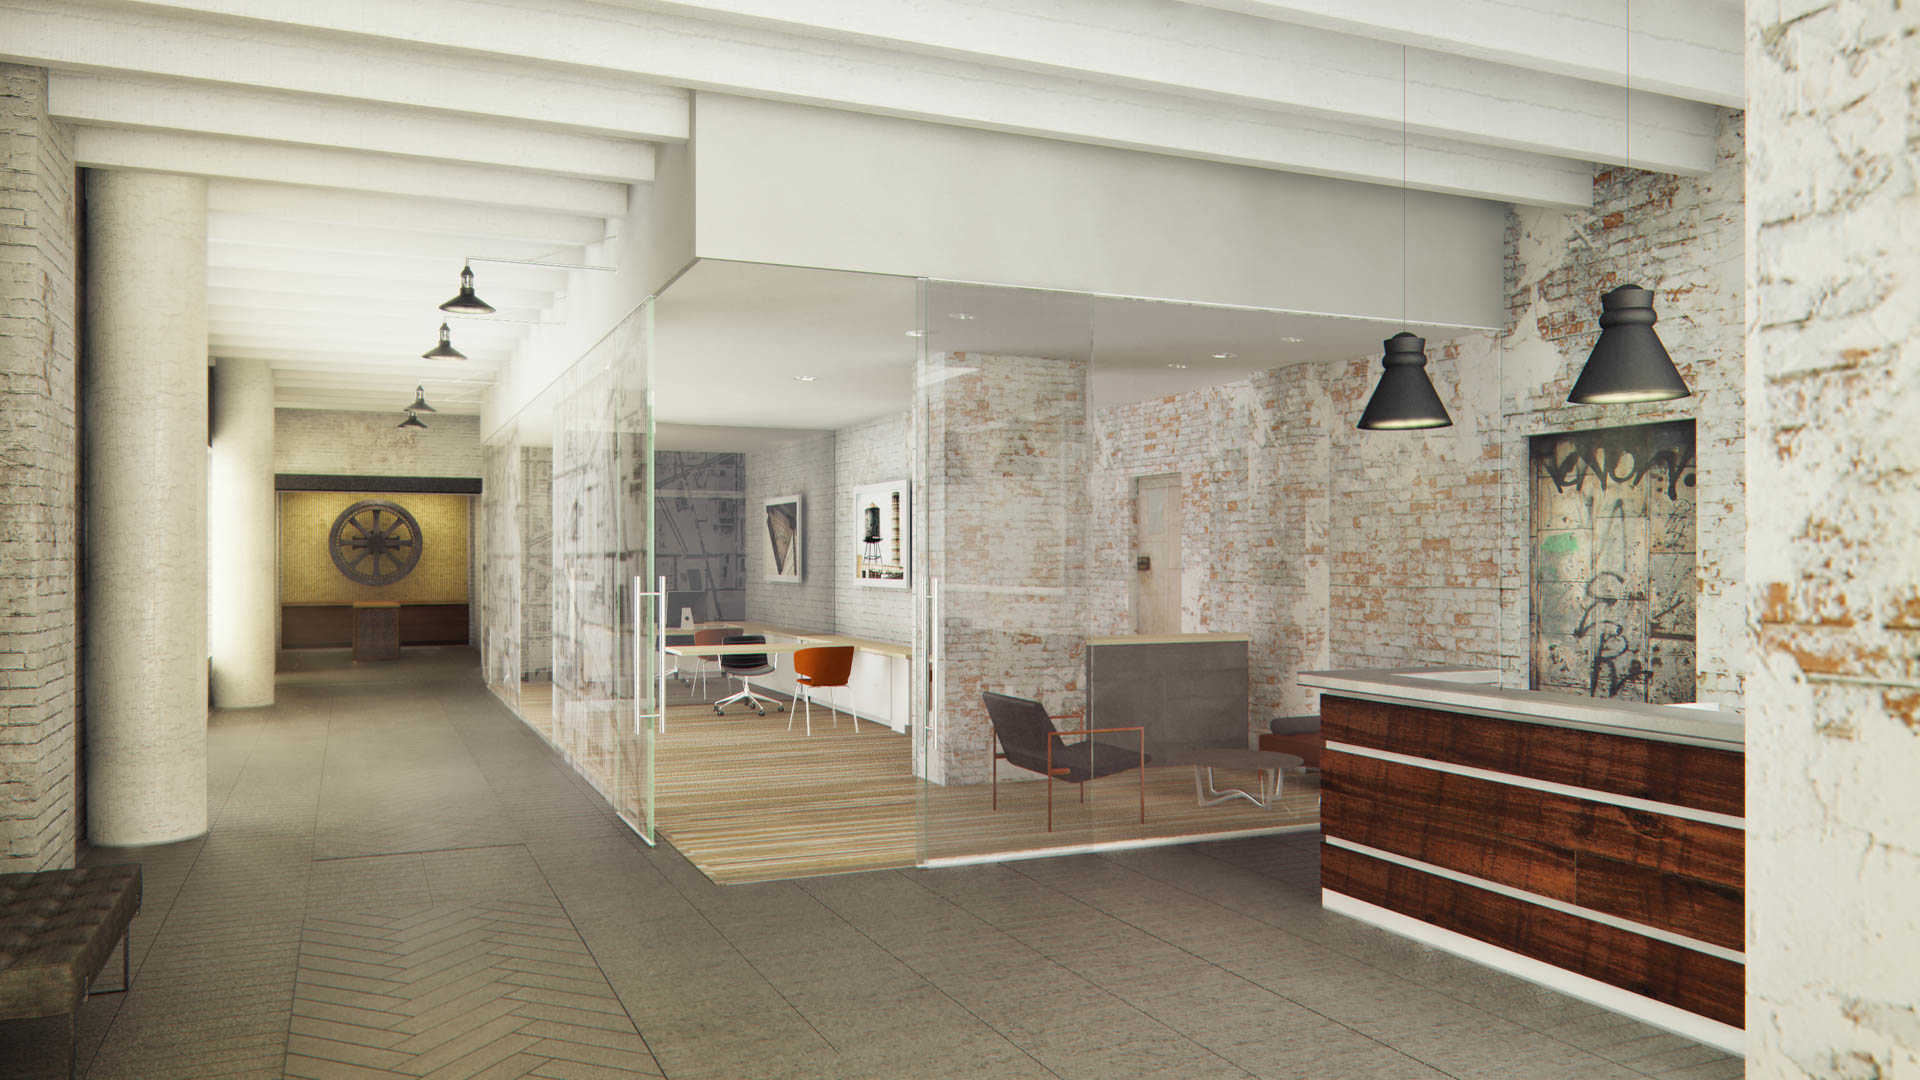 455-eye-street-new-dc-apartments-mount-vernon-triangle-lobby